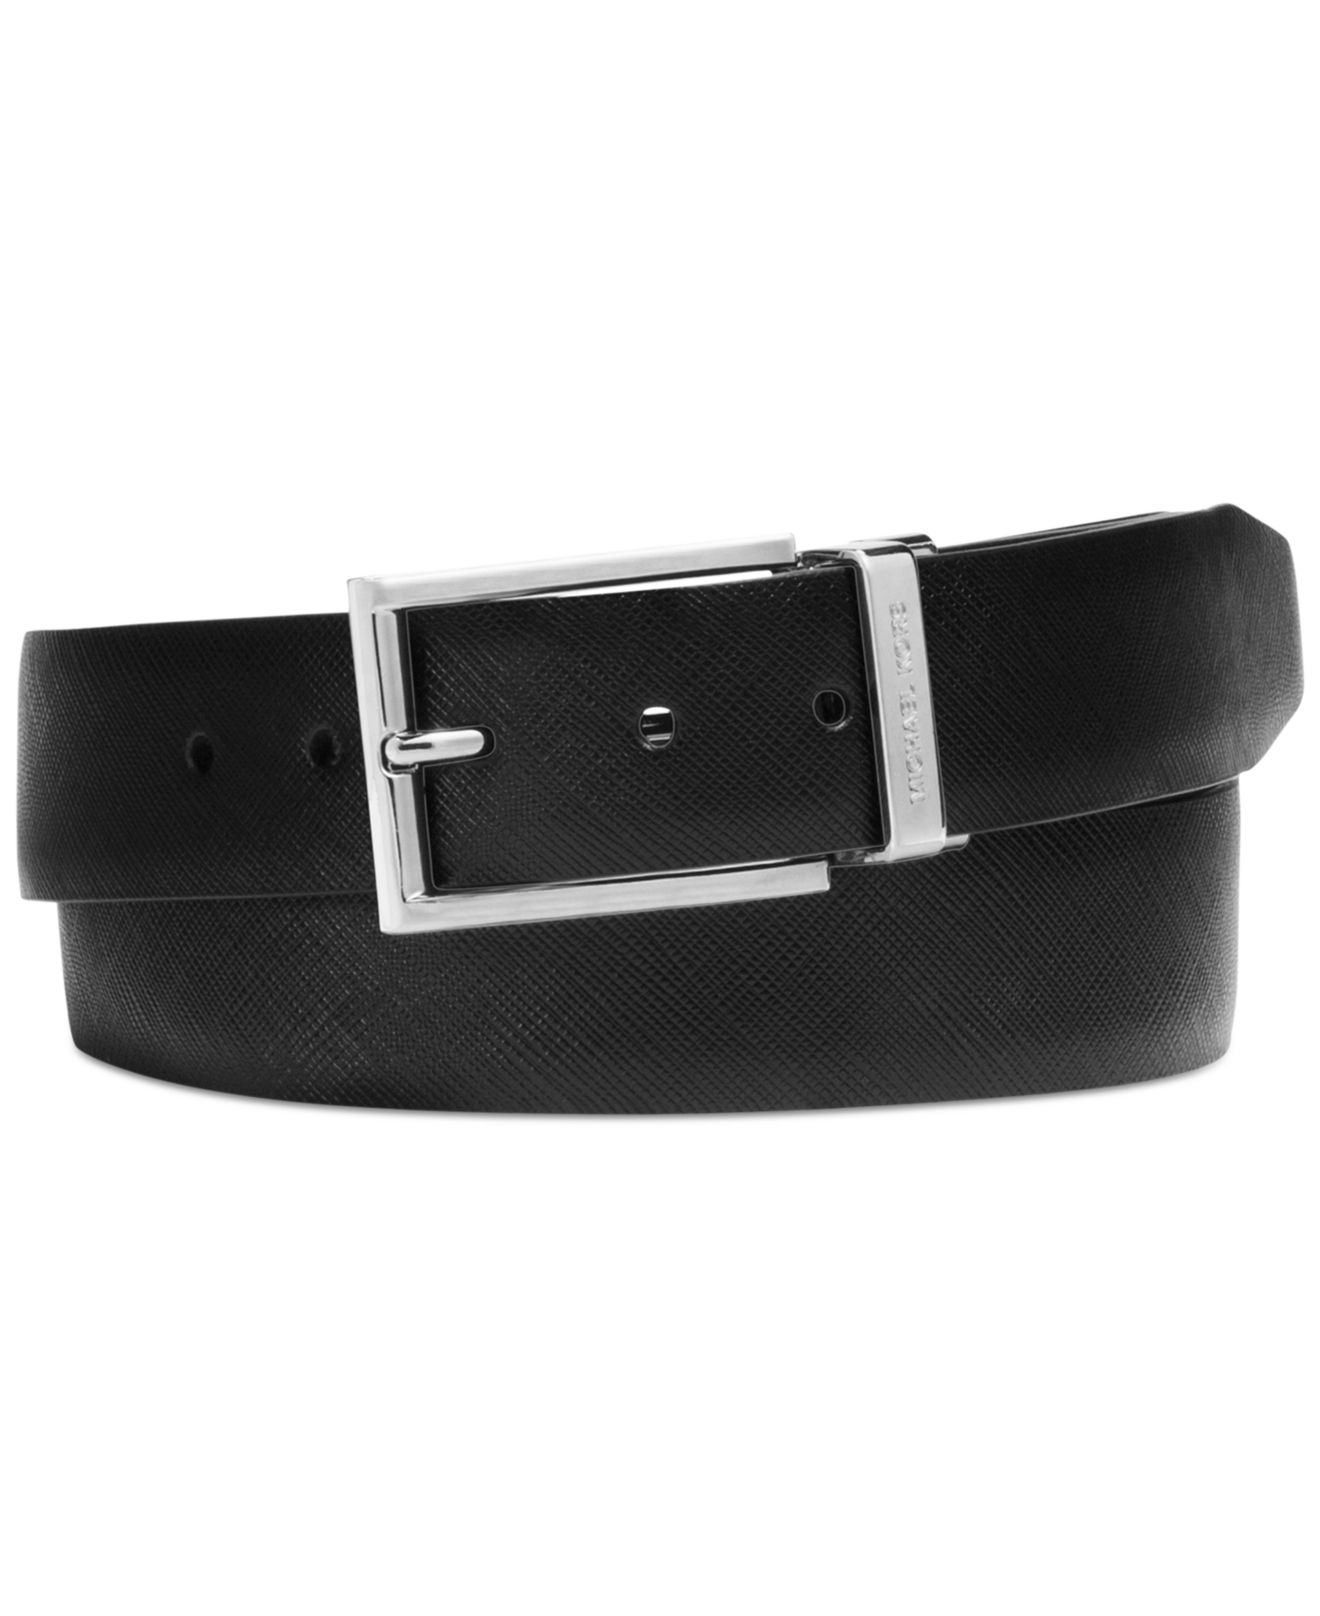 342a2737382e norway lyst michael kors saffiano leather reversible colorblock belt in  36d20 13077